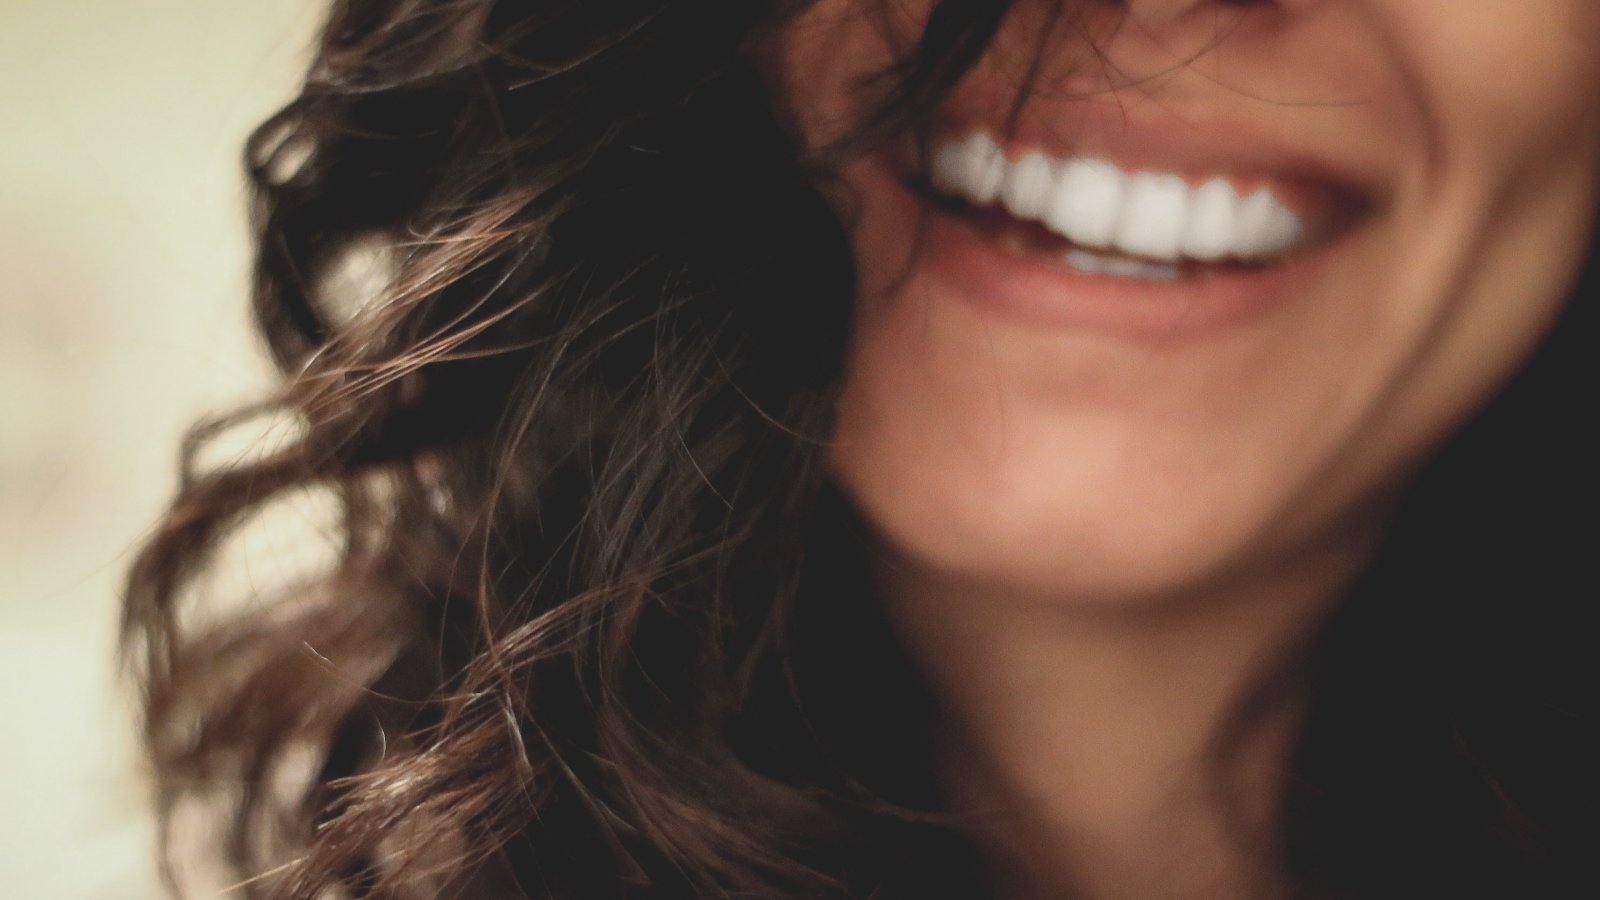 a close up of a woman smiling at the camera